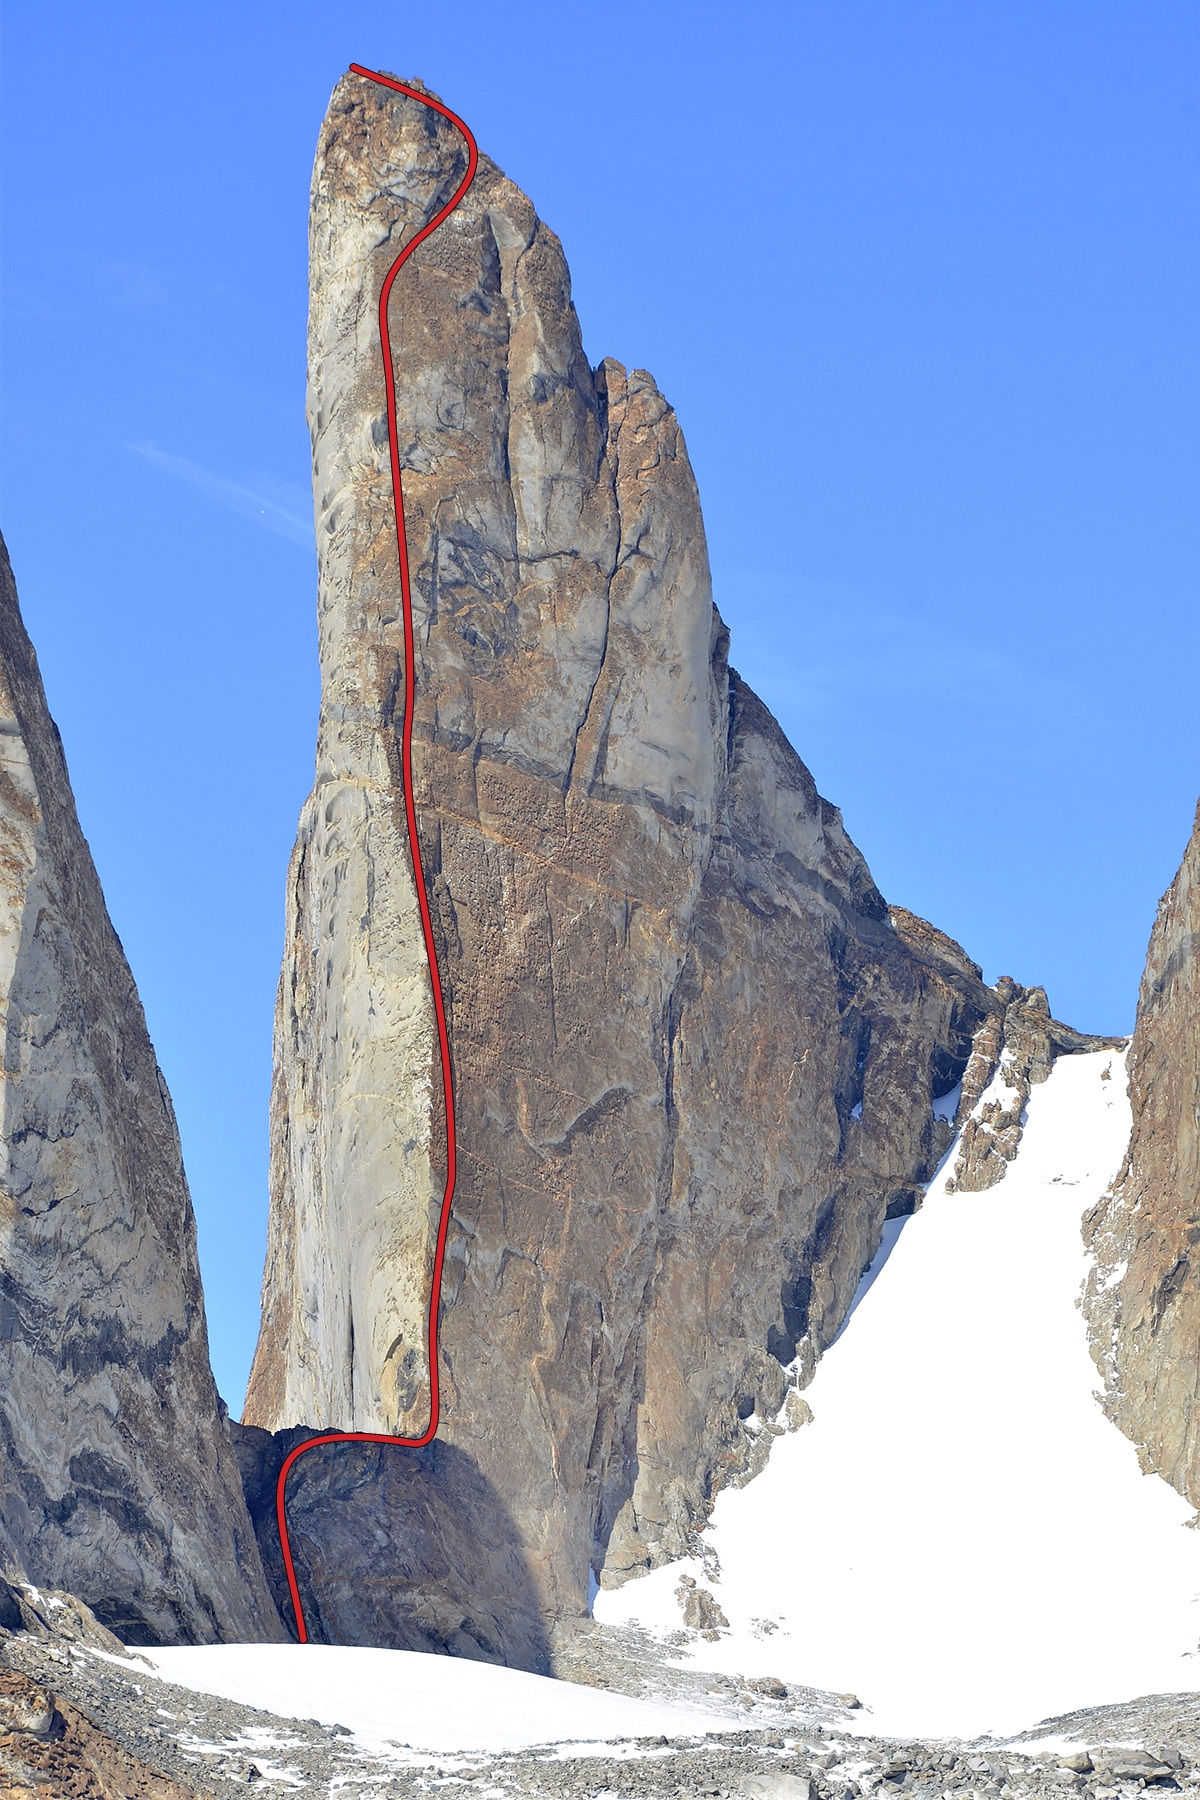 The first-ascent route (600m, VI 5.11 R A3+) up Bertha's Tower.